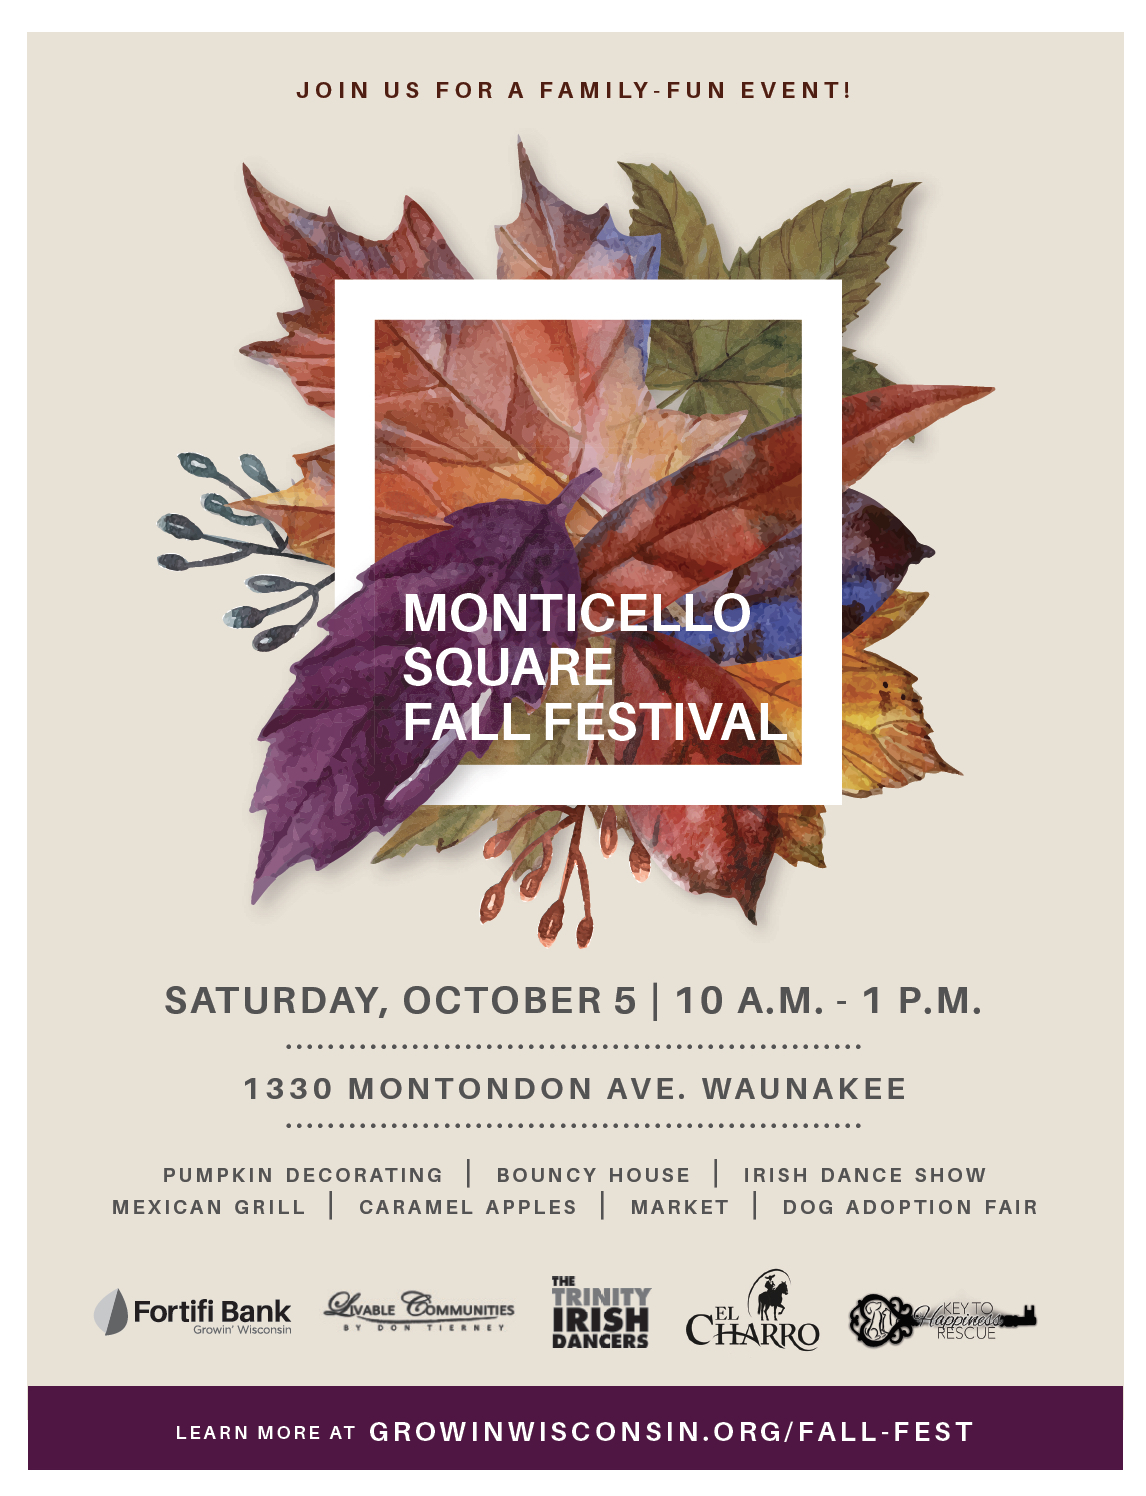 Fall Festival at Monticello Square October 5th, 10a.m.